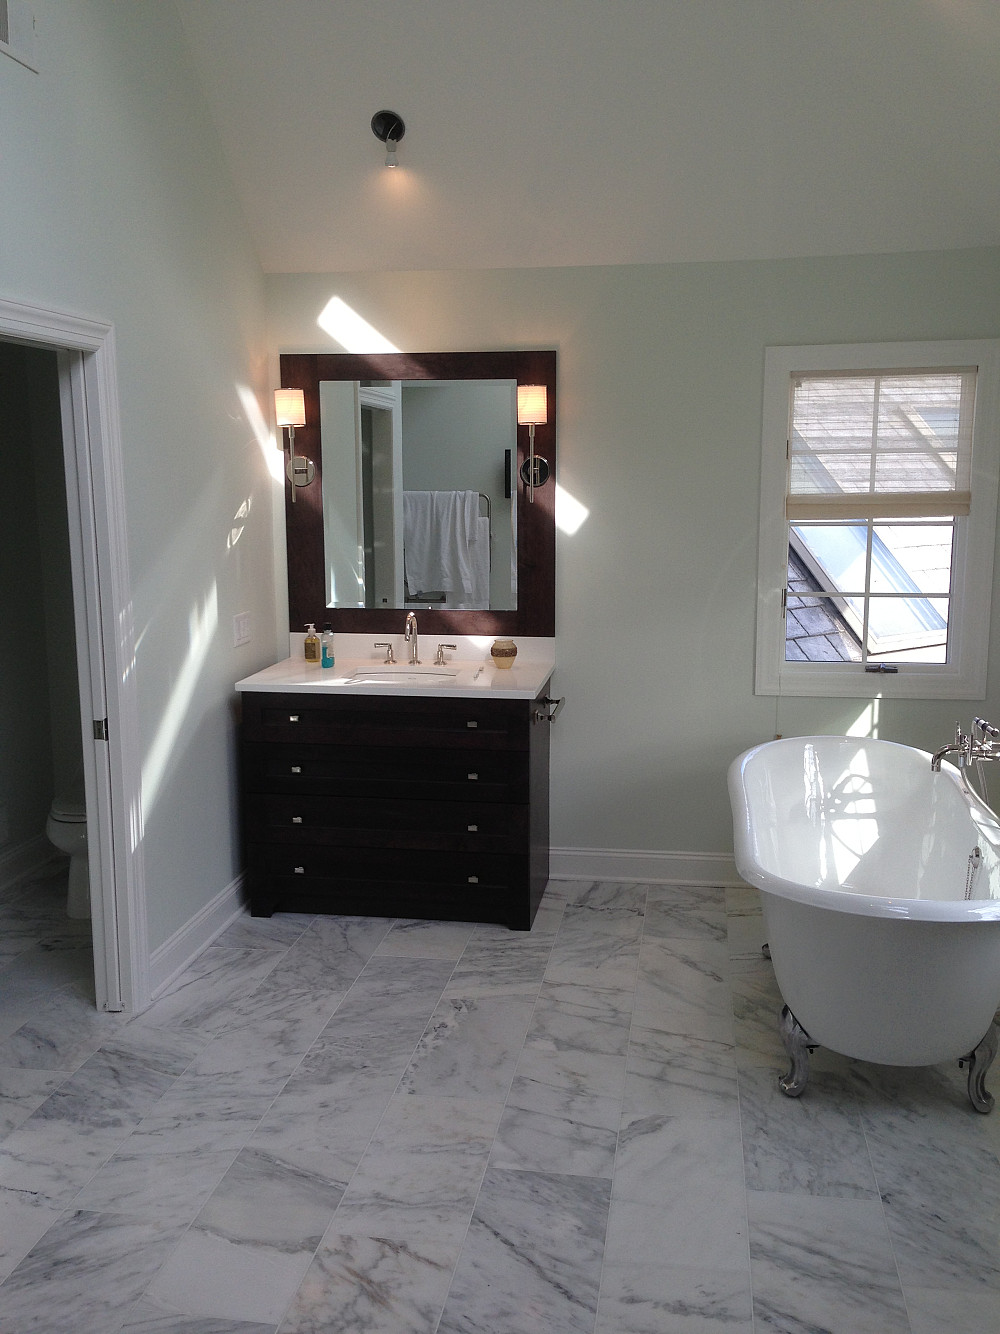 Flansburg Construction Networx - Bathroom remodeling hamilton nj